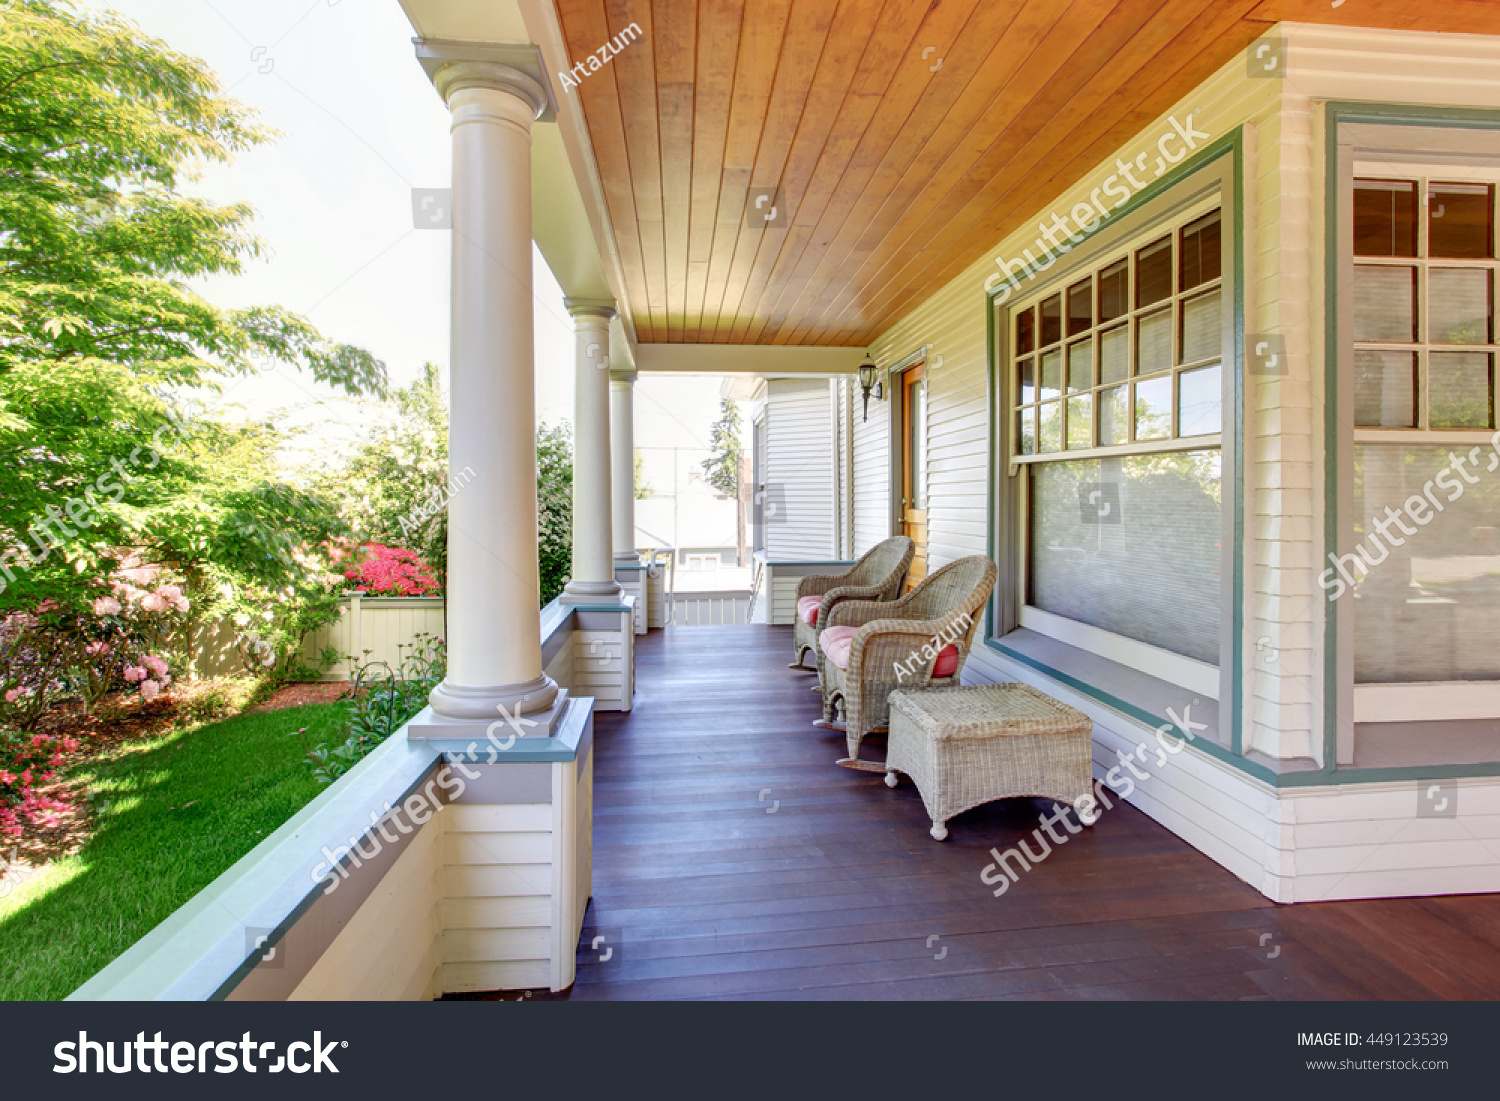 Covered front porch craftsman style home royalty free stock image - Front Porch With Chairs And Columns Of Craftsman Style Home